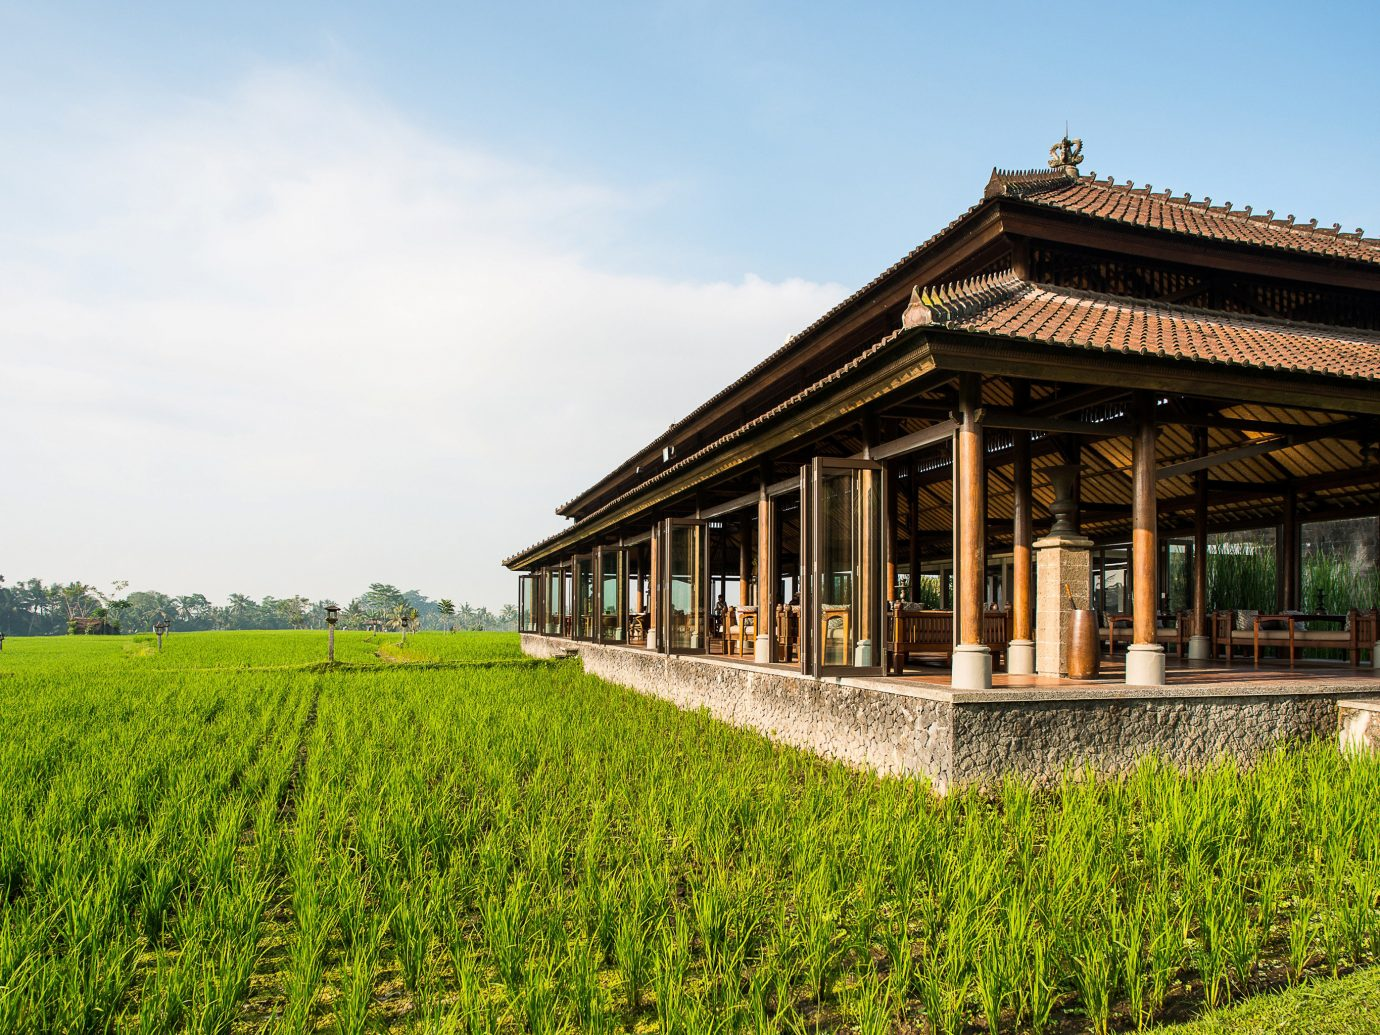 Dining Grounds Hotels Luxury grass sky outdoor building estate rural area agriculture plantation house